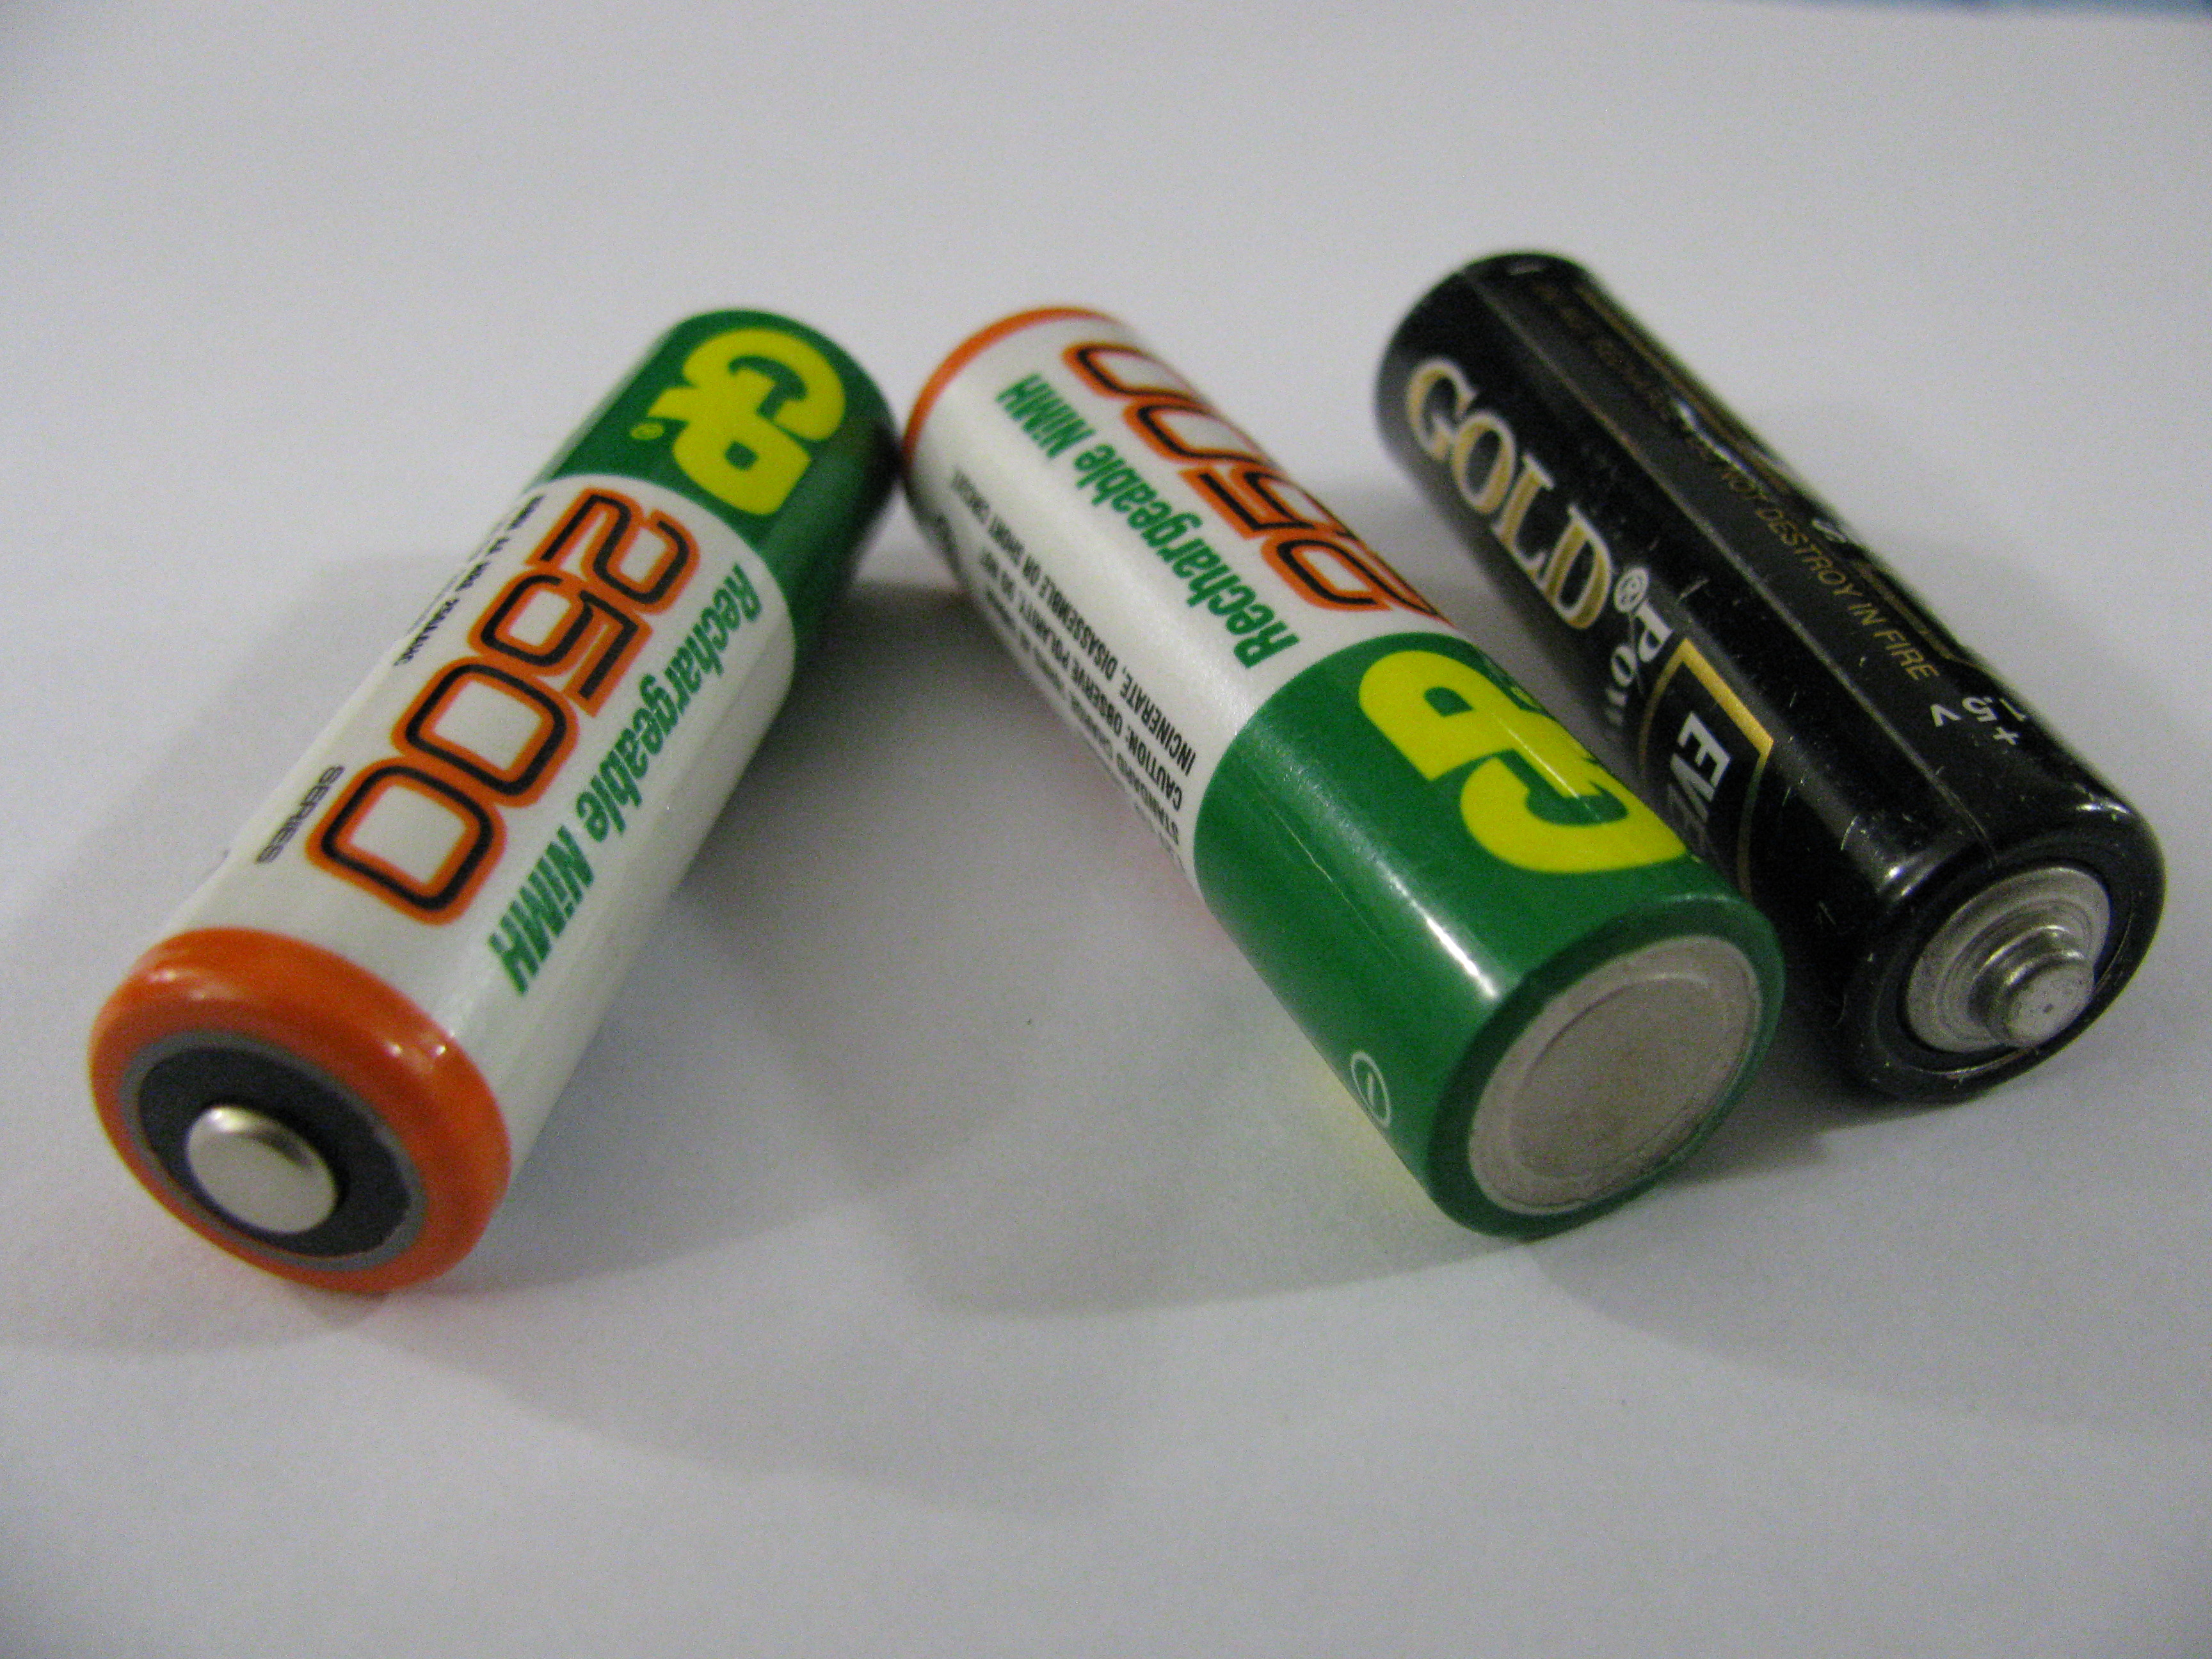 https://upload.wikimedia.org/wikipedia/commons/5/5f/Three_batteries.JPG